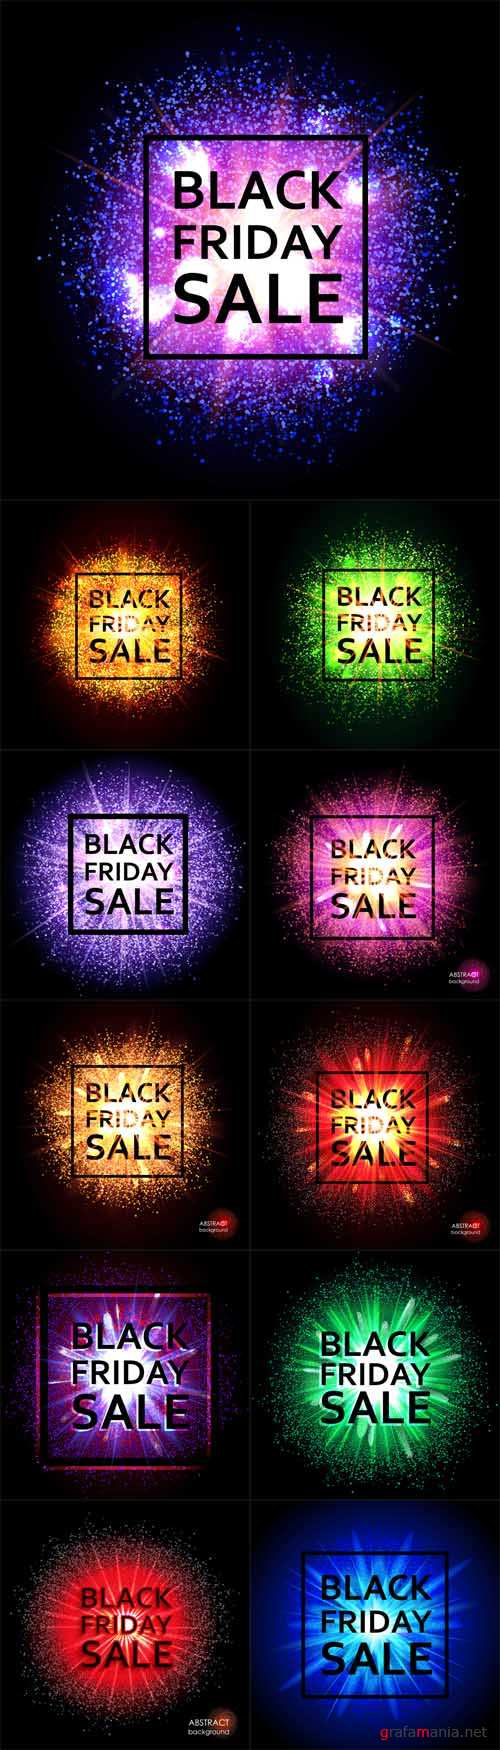 Vector Black Friday. Christmas sale, discounts. The text on the background of the cloud of explosion of light and dust